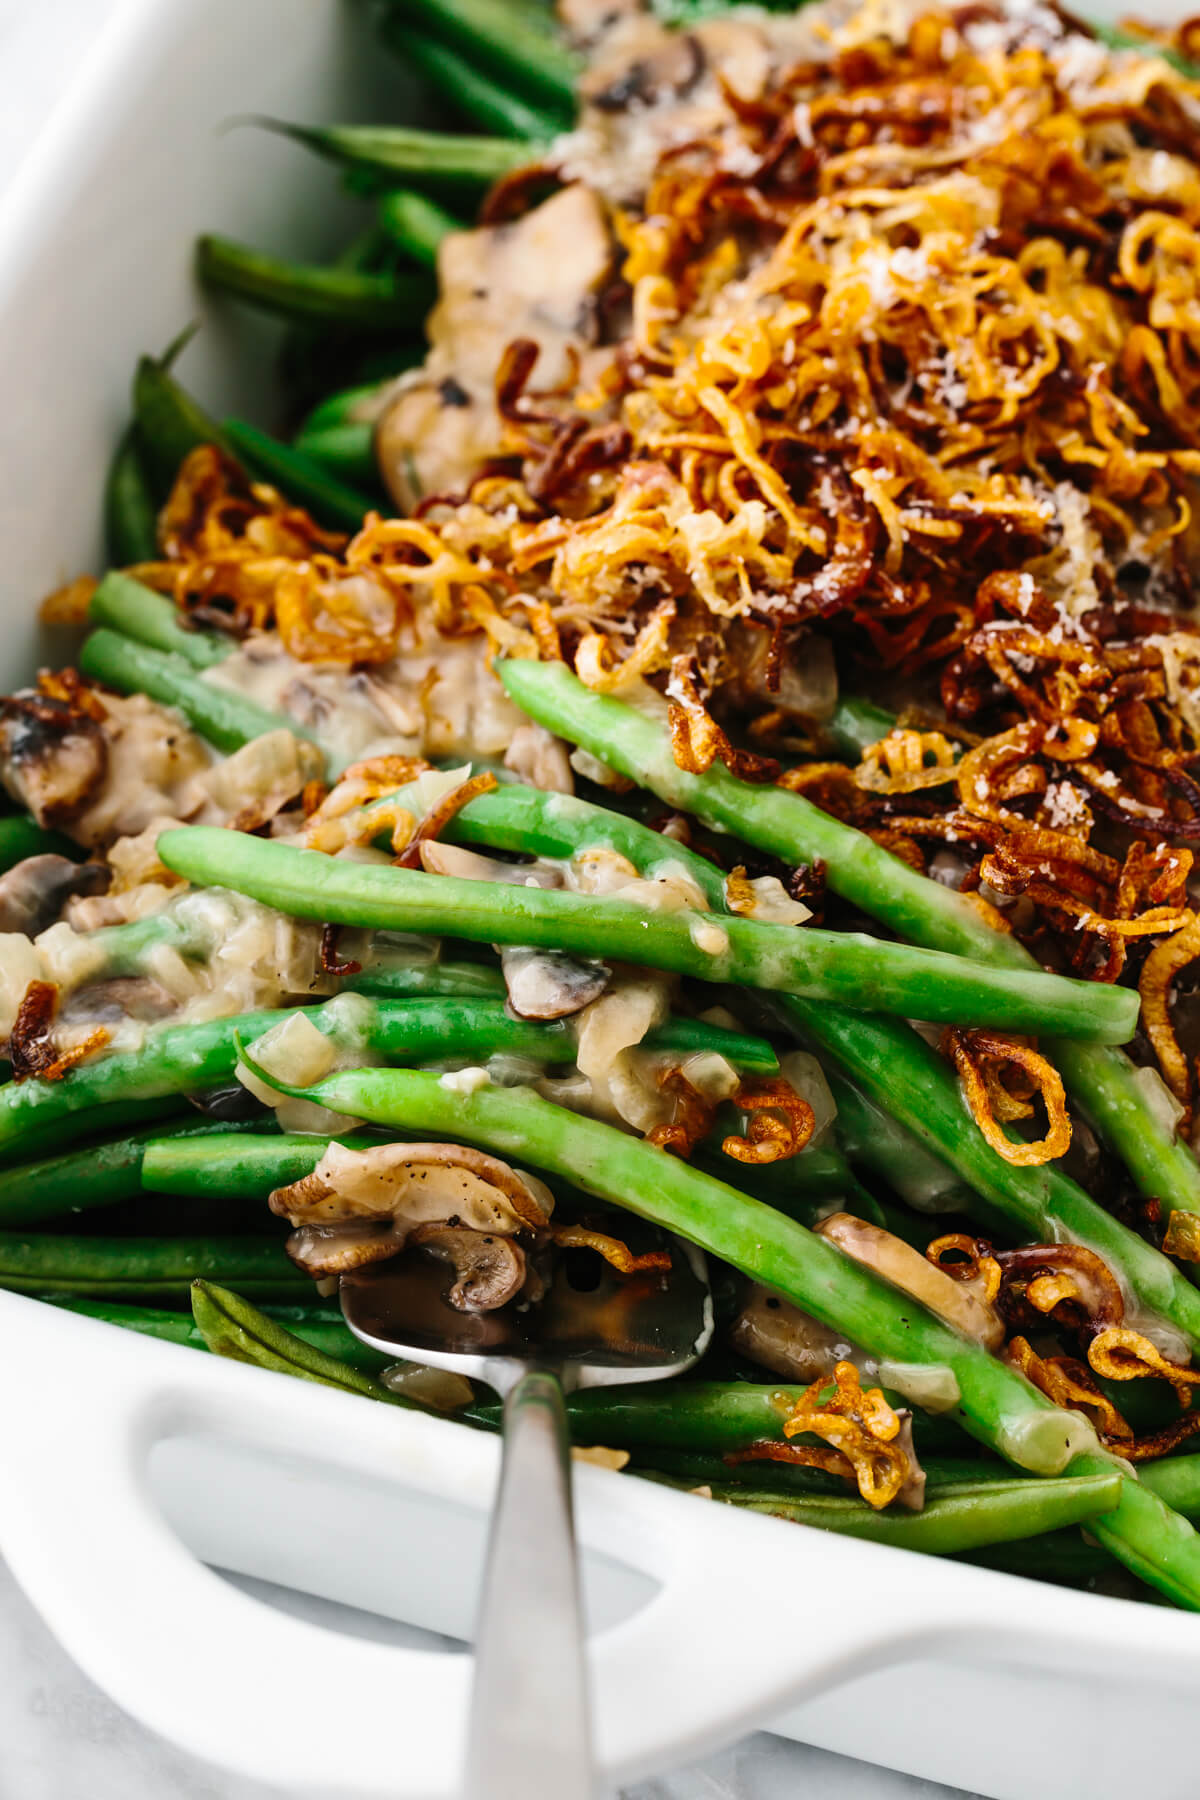 Healthy green bean casserole in a white dish.